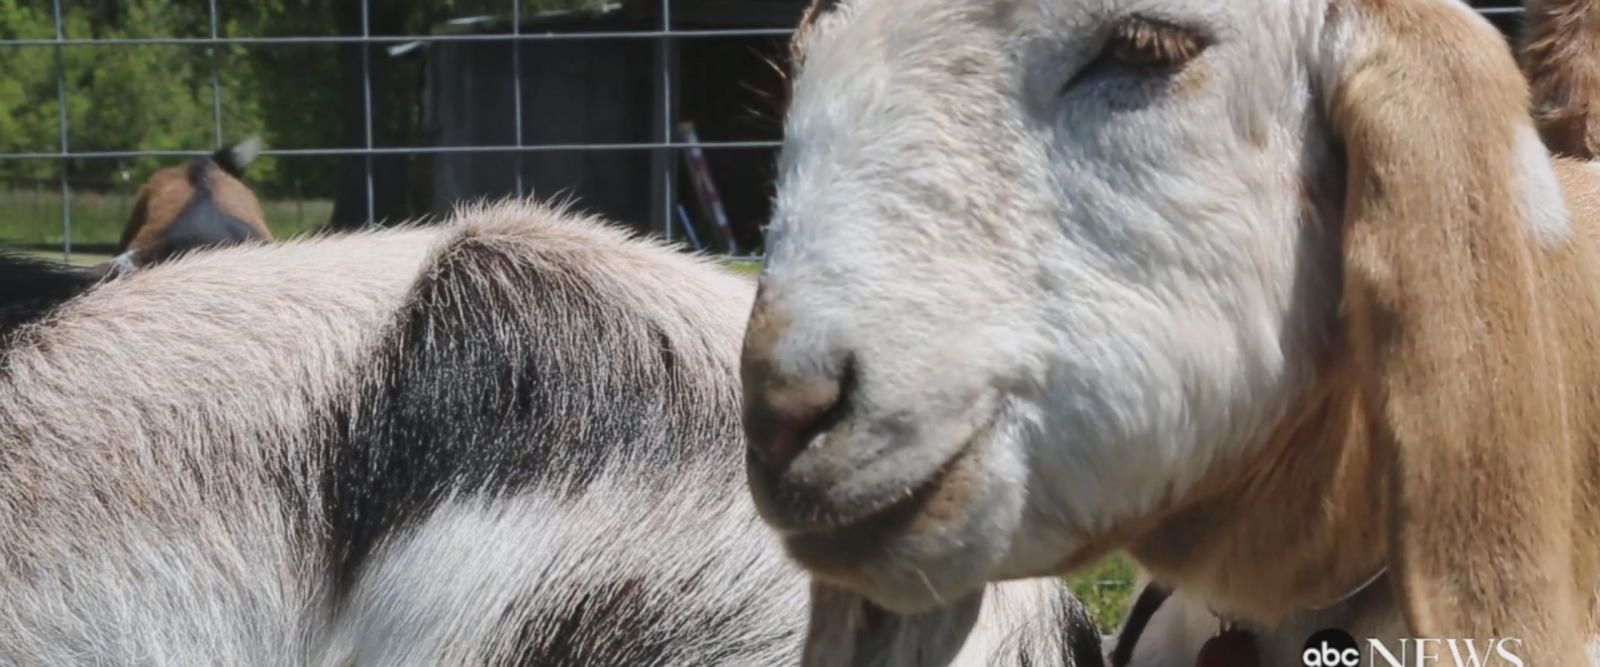 VIDEO: Goat yoga is the latest trend, and it's here to namaste